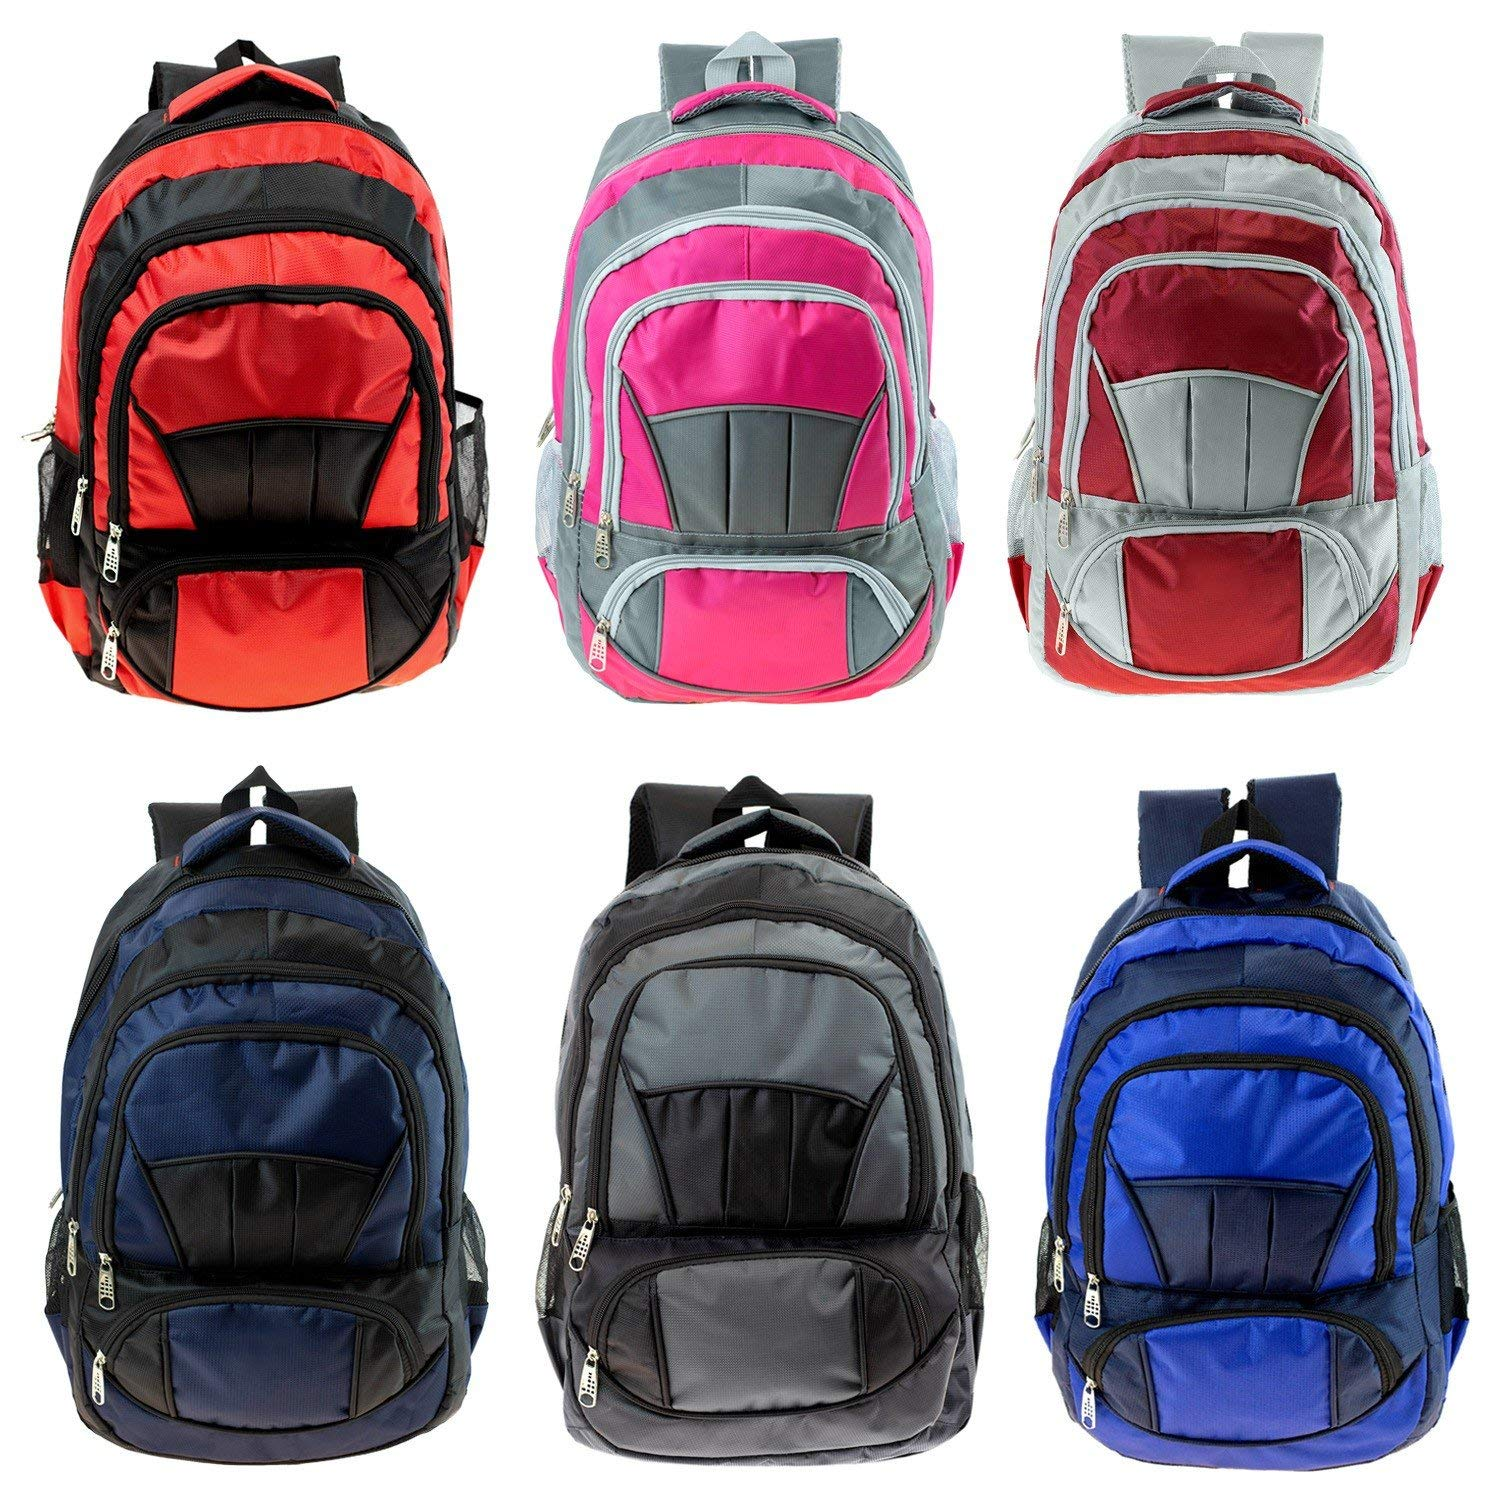 Wholesale 19'' Adult Large Premium Padded Backpack in 6 Assorted Colors - Bulk Case of 24 Bookbags